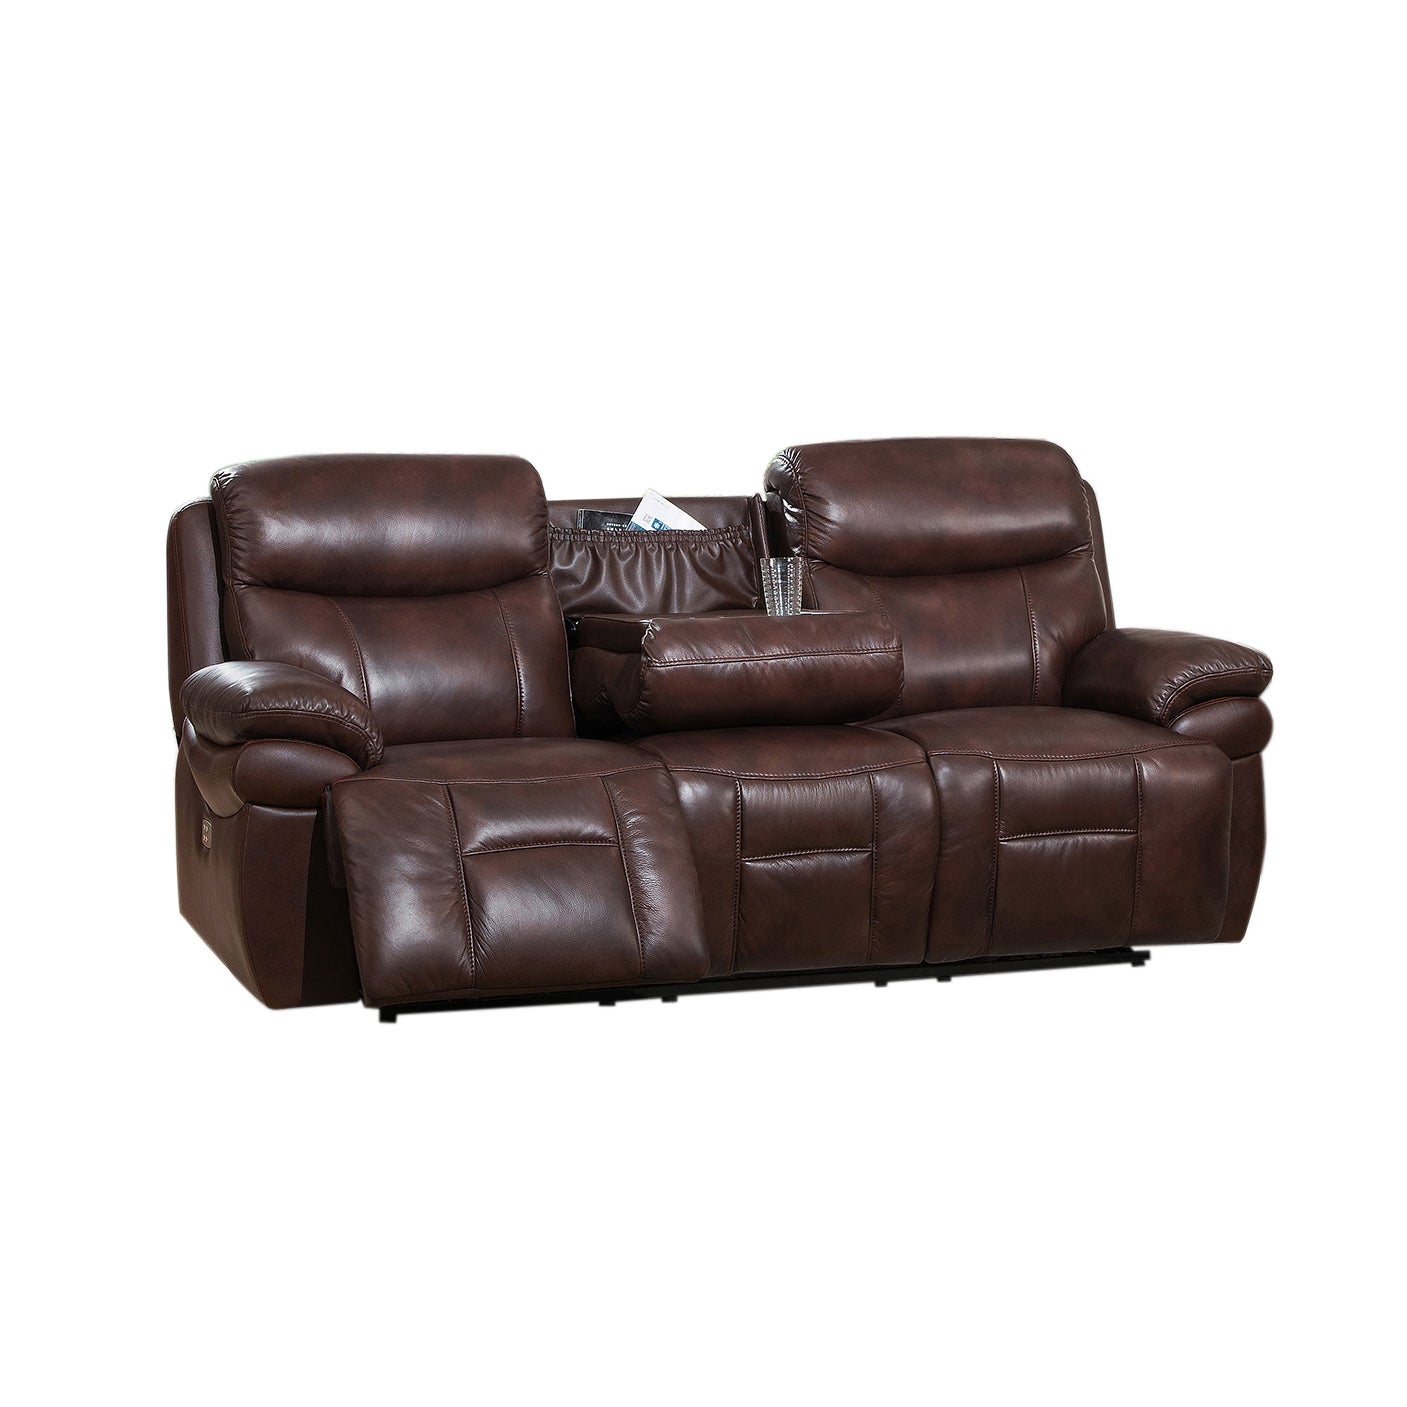 recliner flexsteel com resolution image a with sofa via share product wicklow high download email